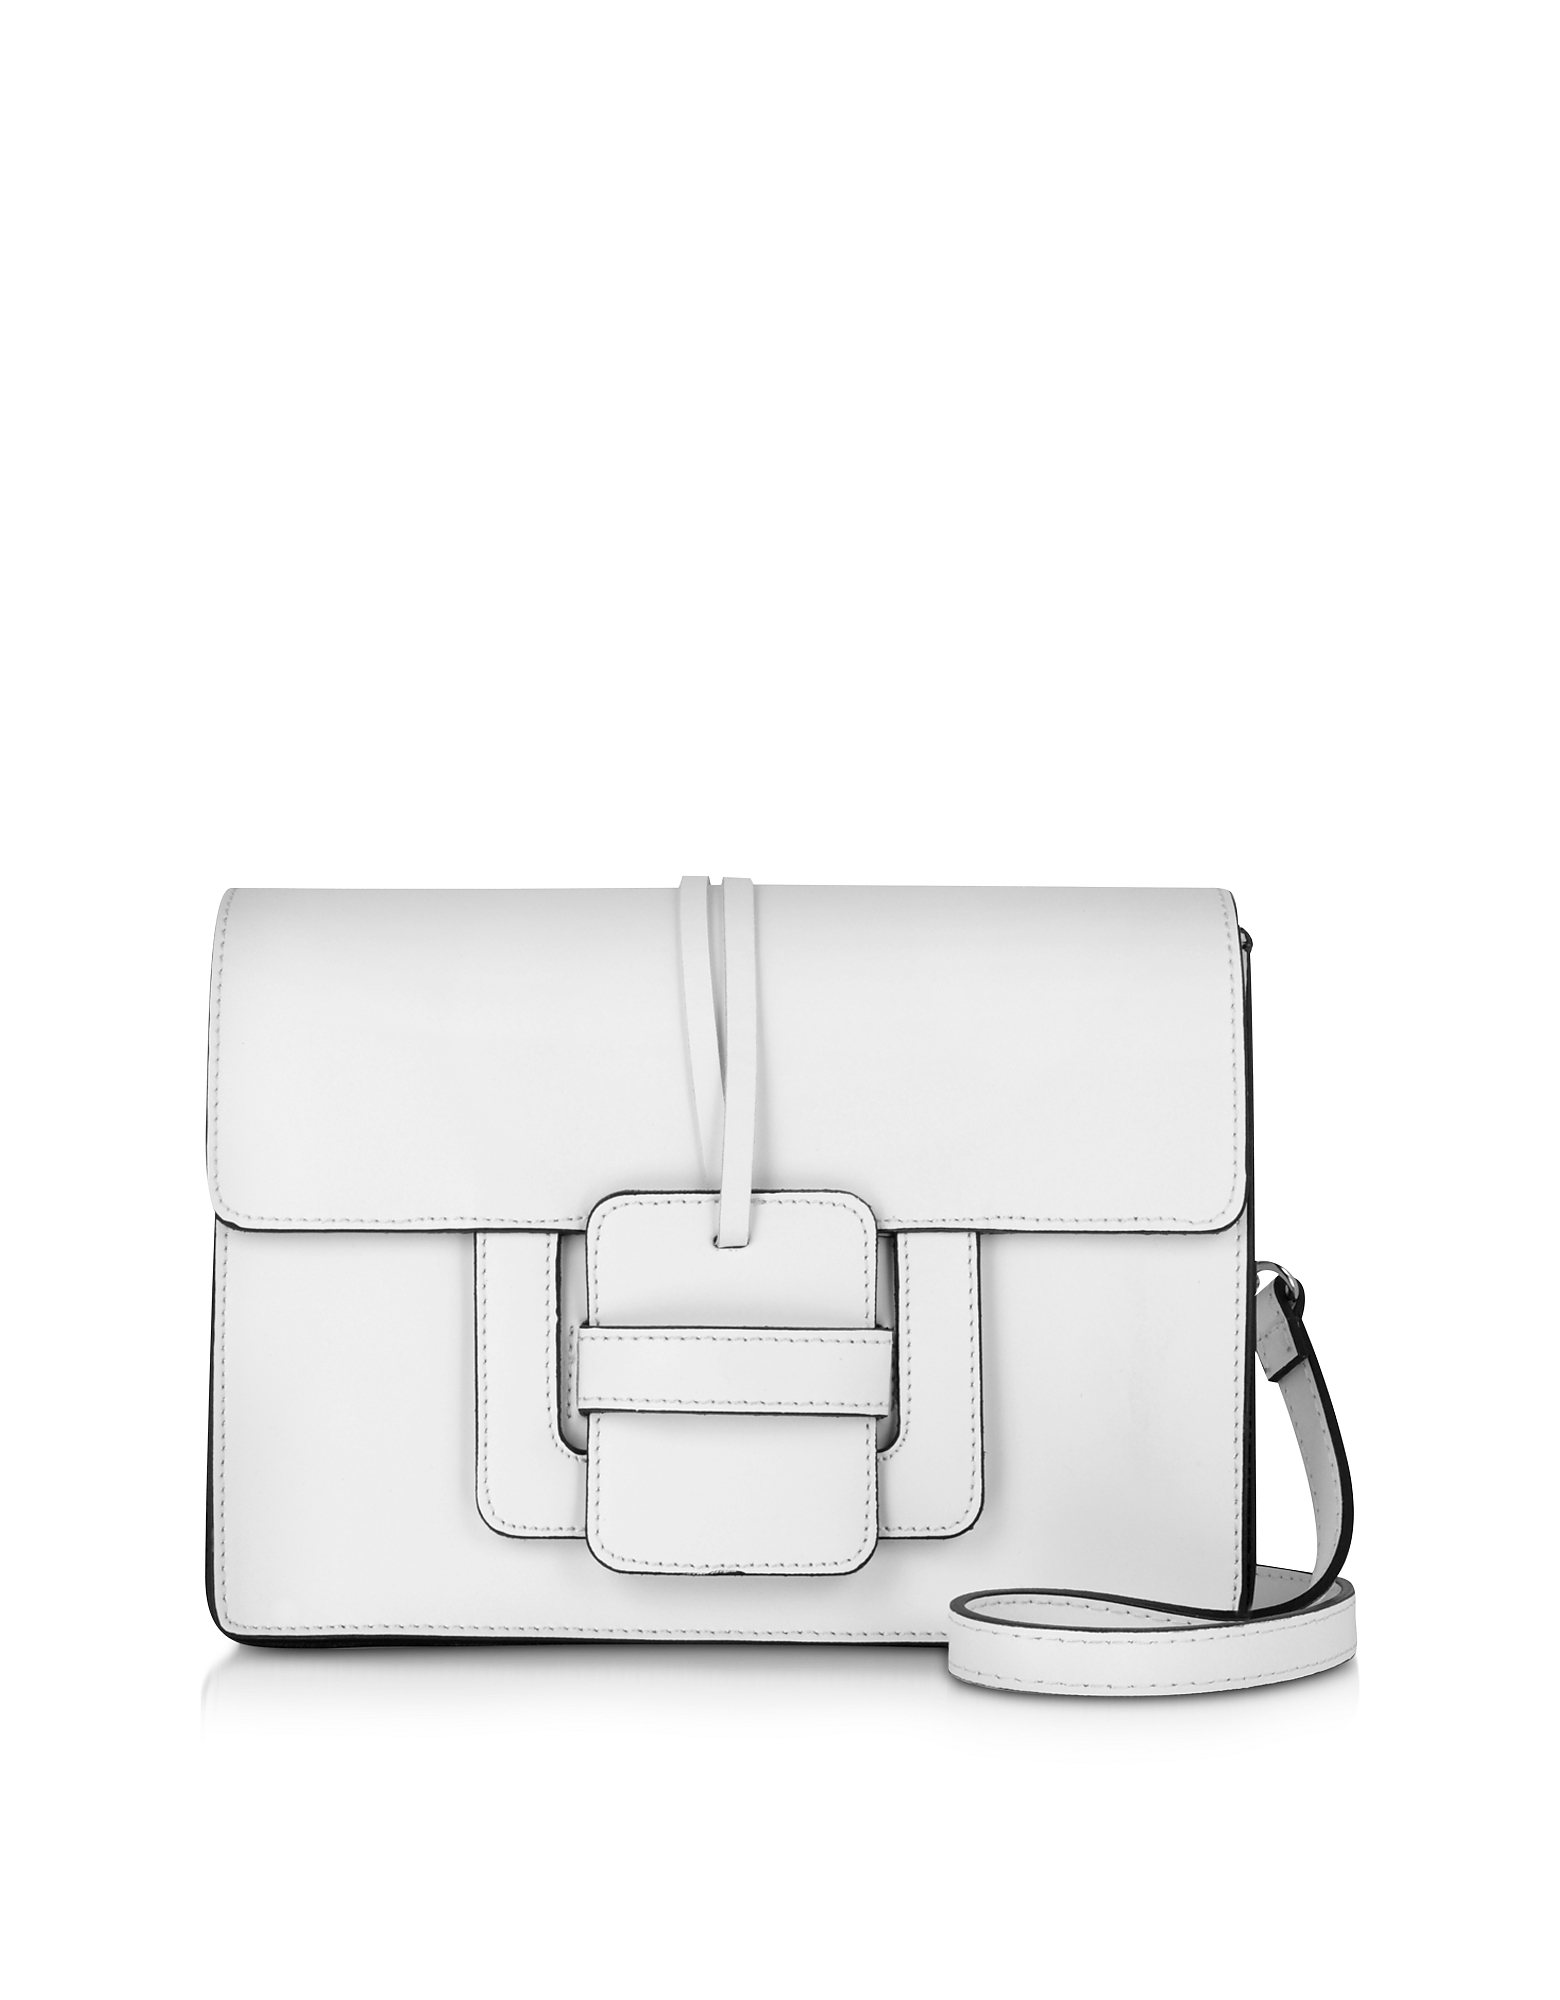 Le Parmentier Handbags, White Leather Shoulder Bag